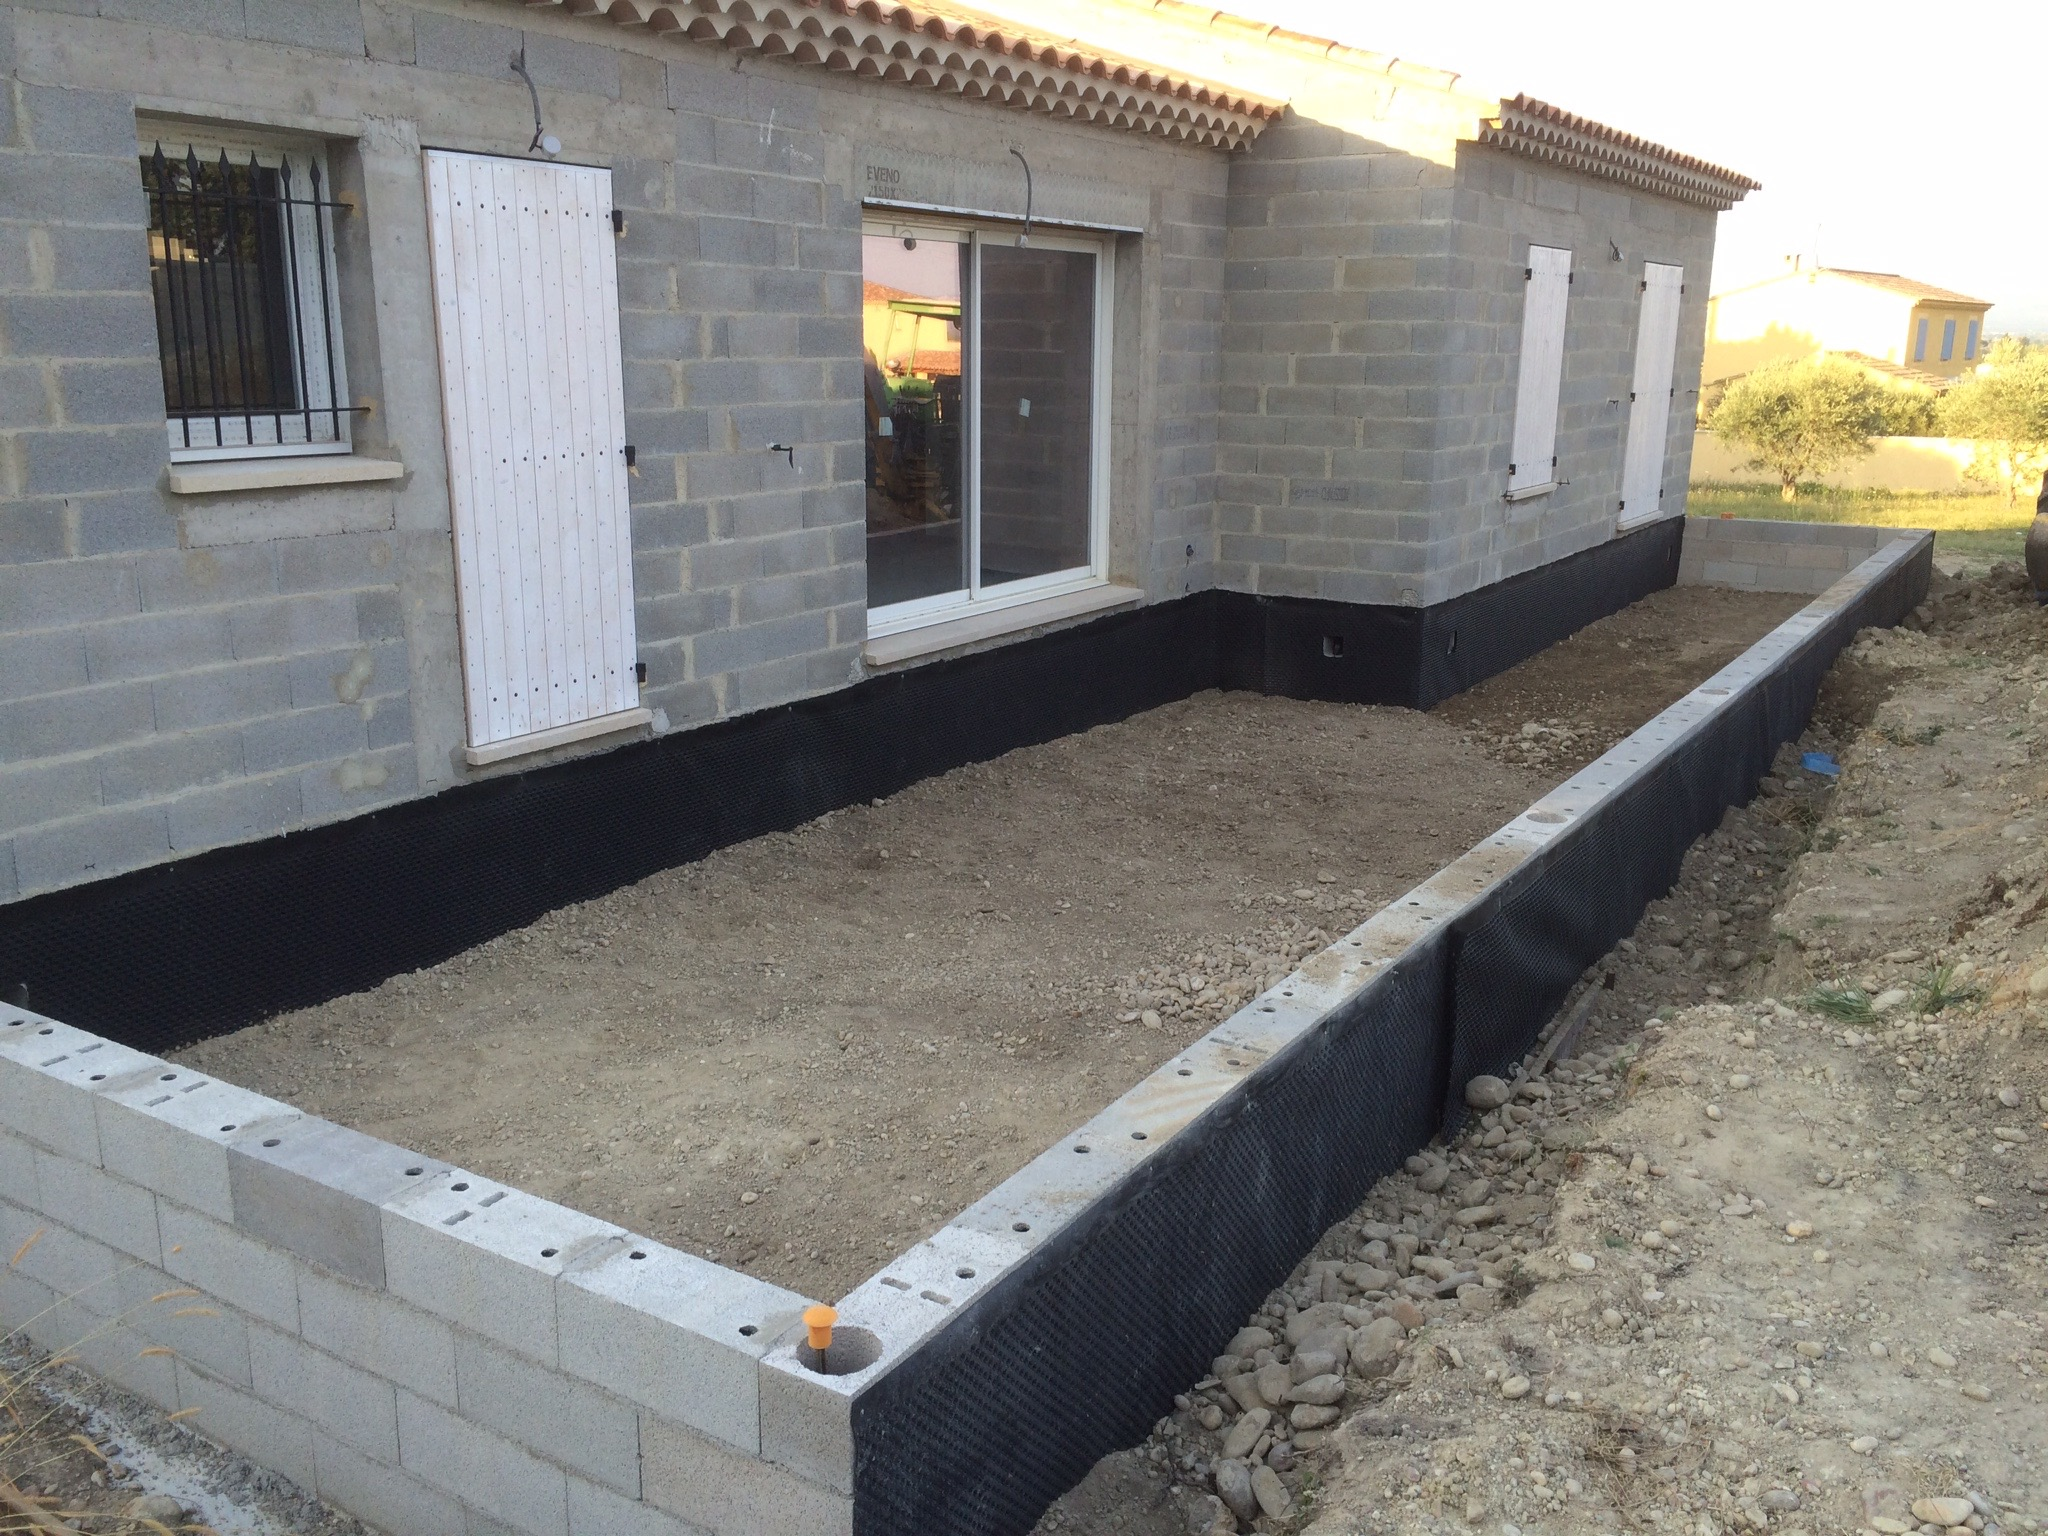 Terrasse Beton Niveau Remblayer Avant Dalle Terrasse 10 Messages